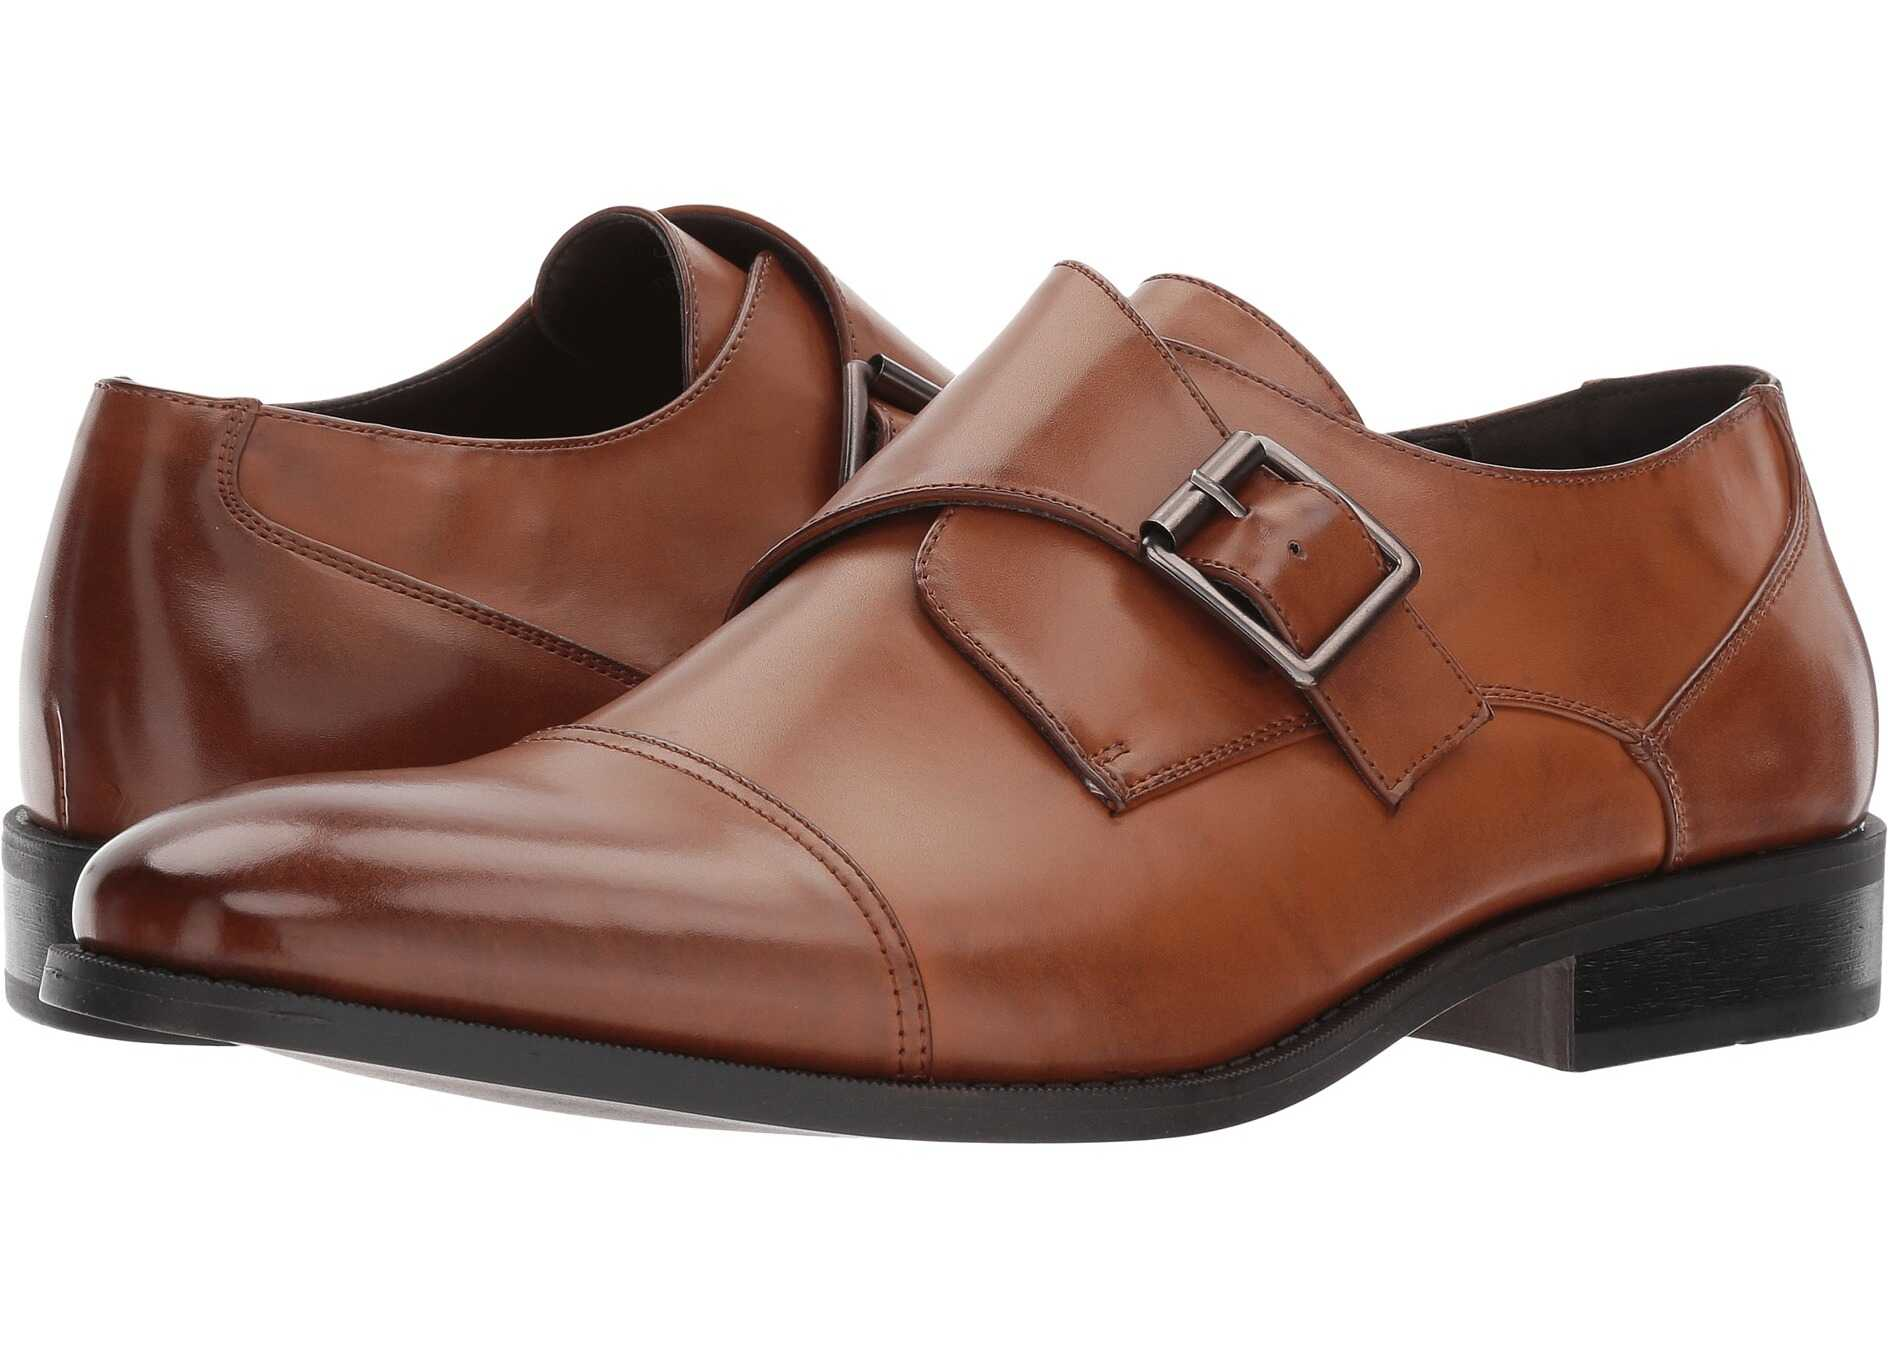 Kenneth Cole Unlisted Design 30134 Cognac